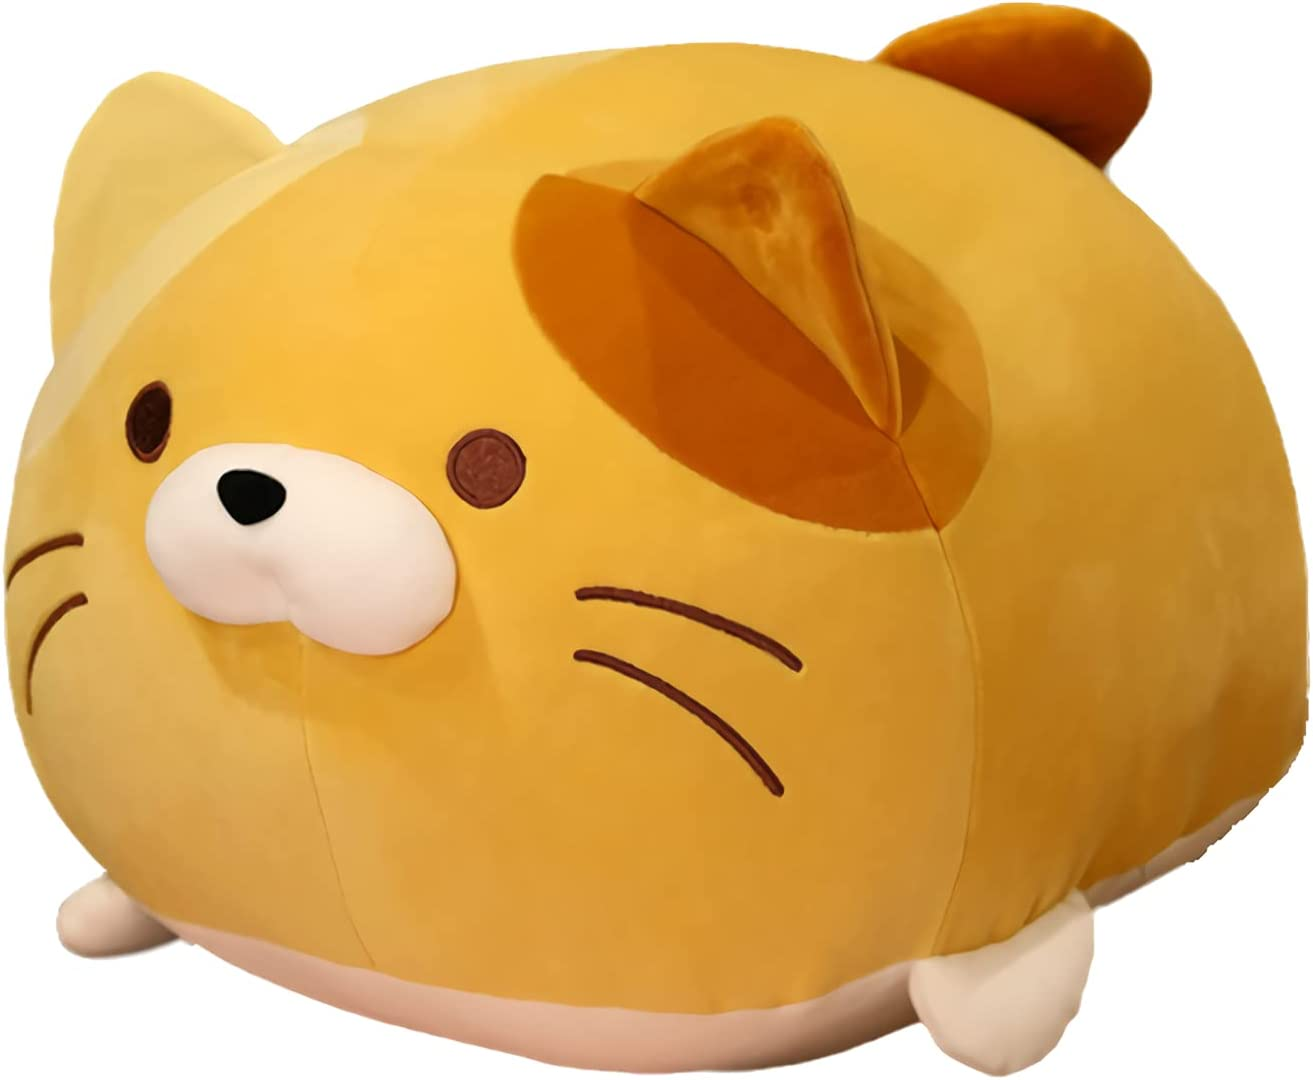 Soft Cats Plush Hugging Pillow Cute New sales online shop Animals Stuffed Toy Doll Gif